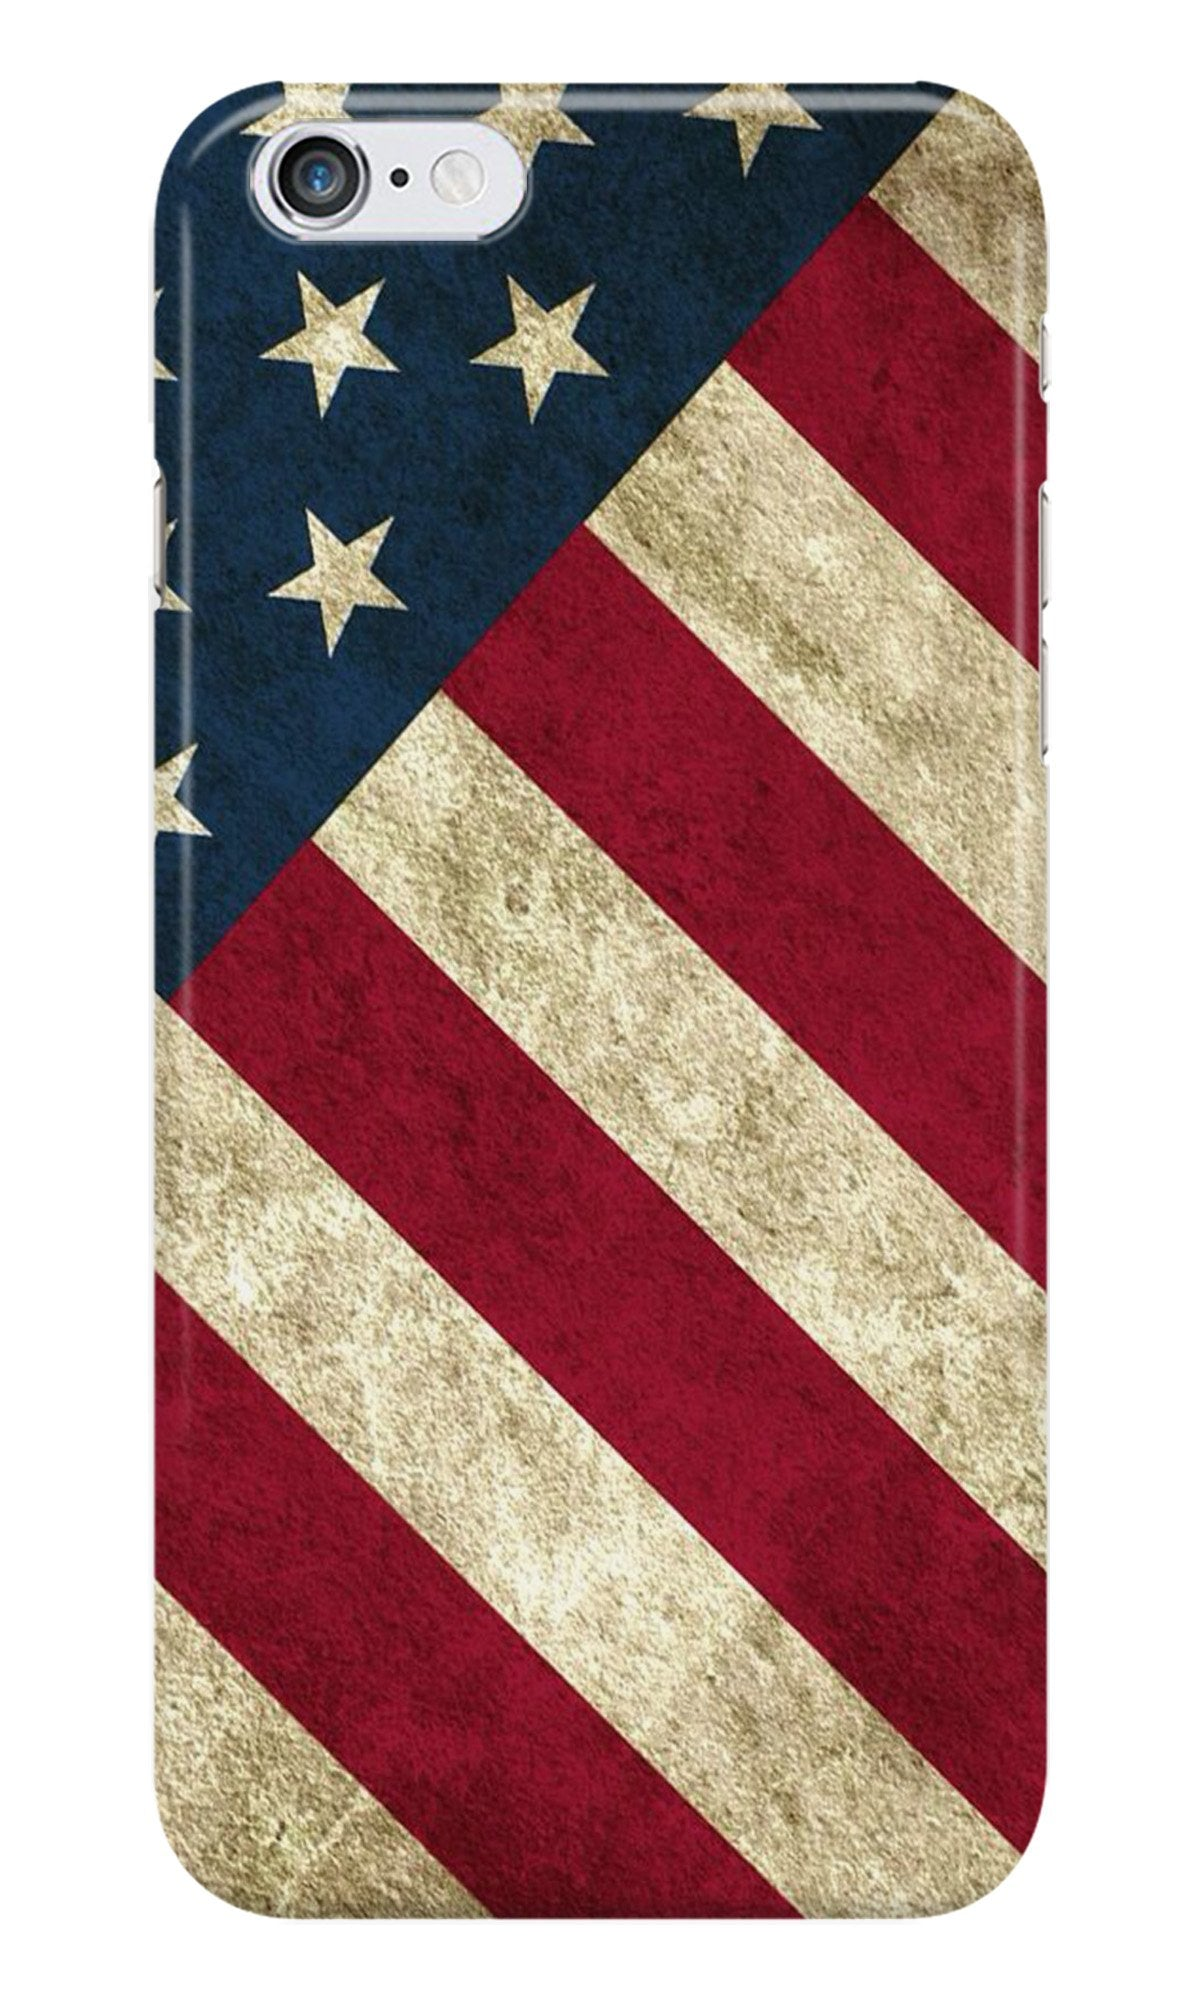 America Case for iPhone 6/ 6s